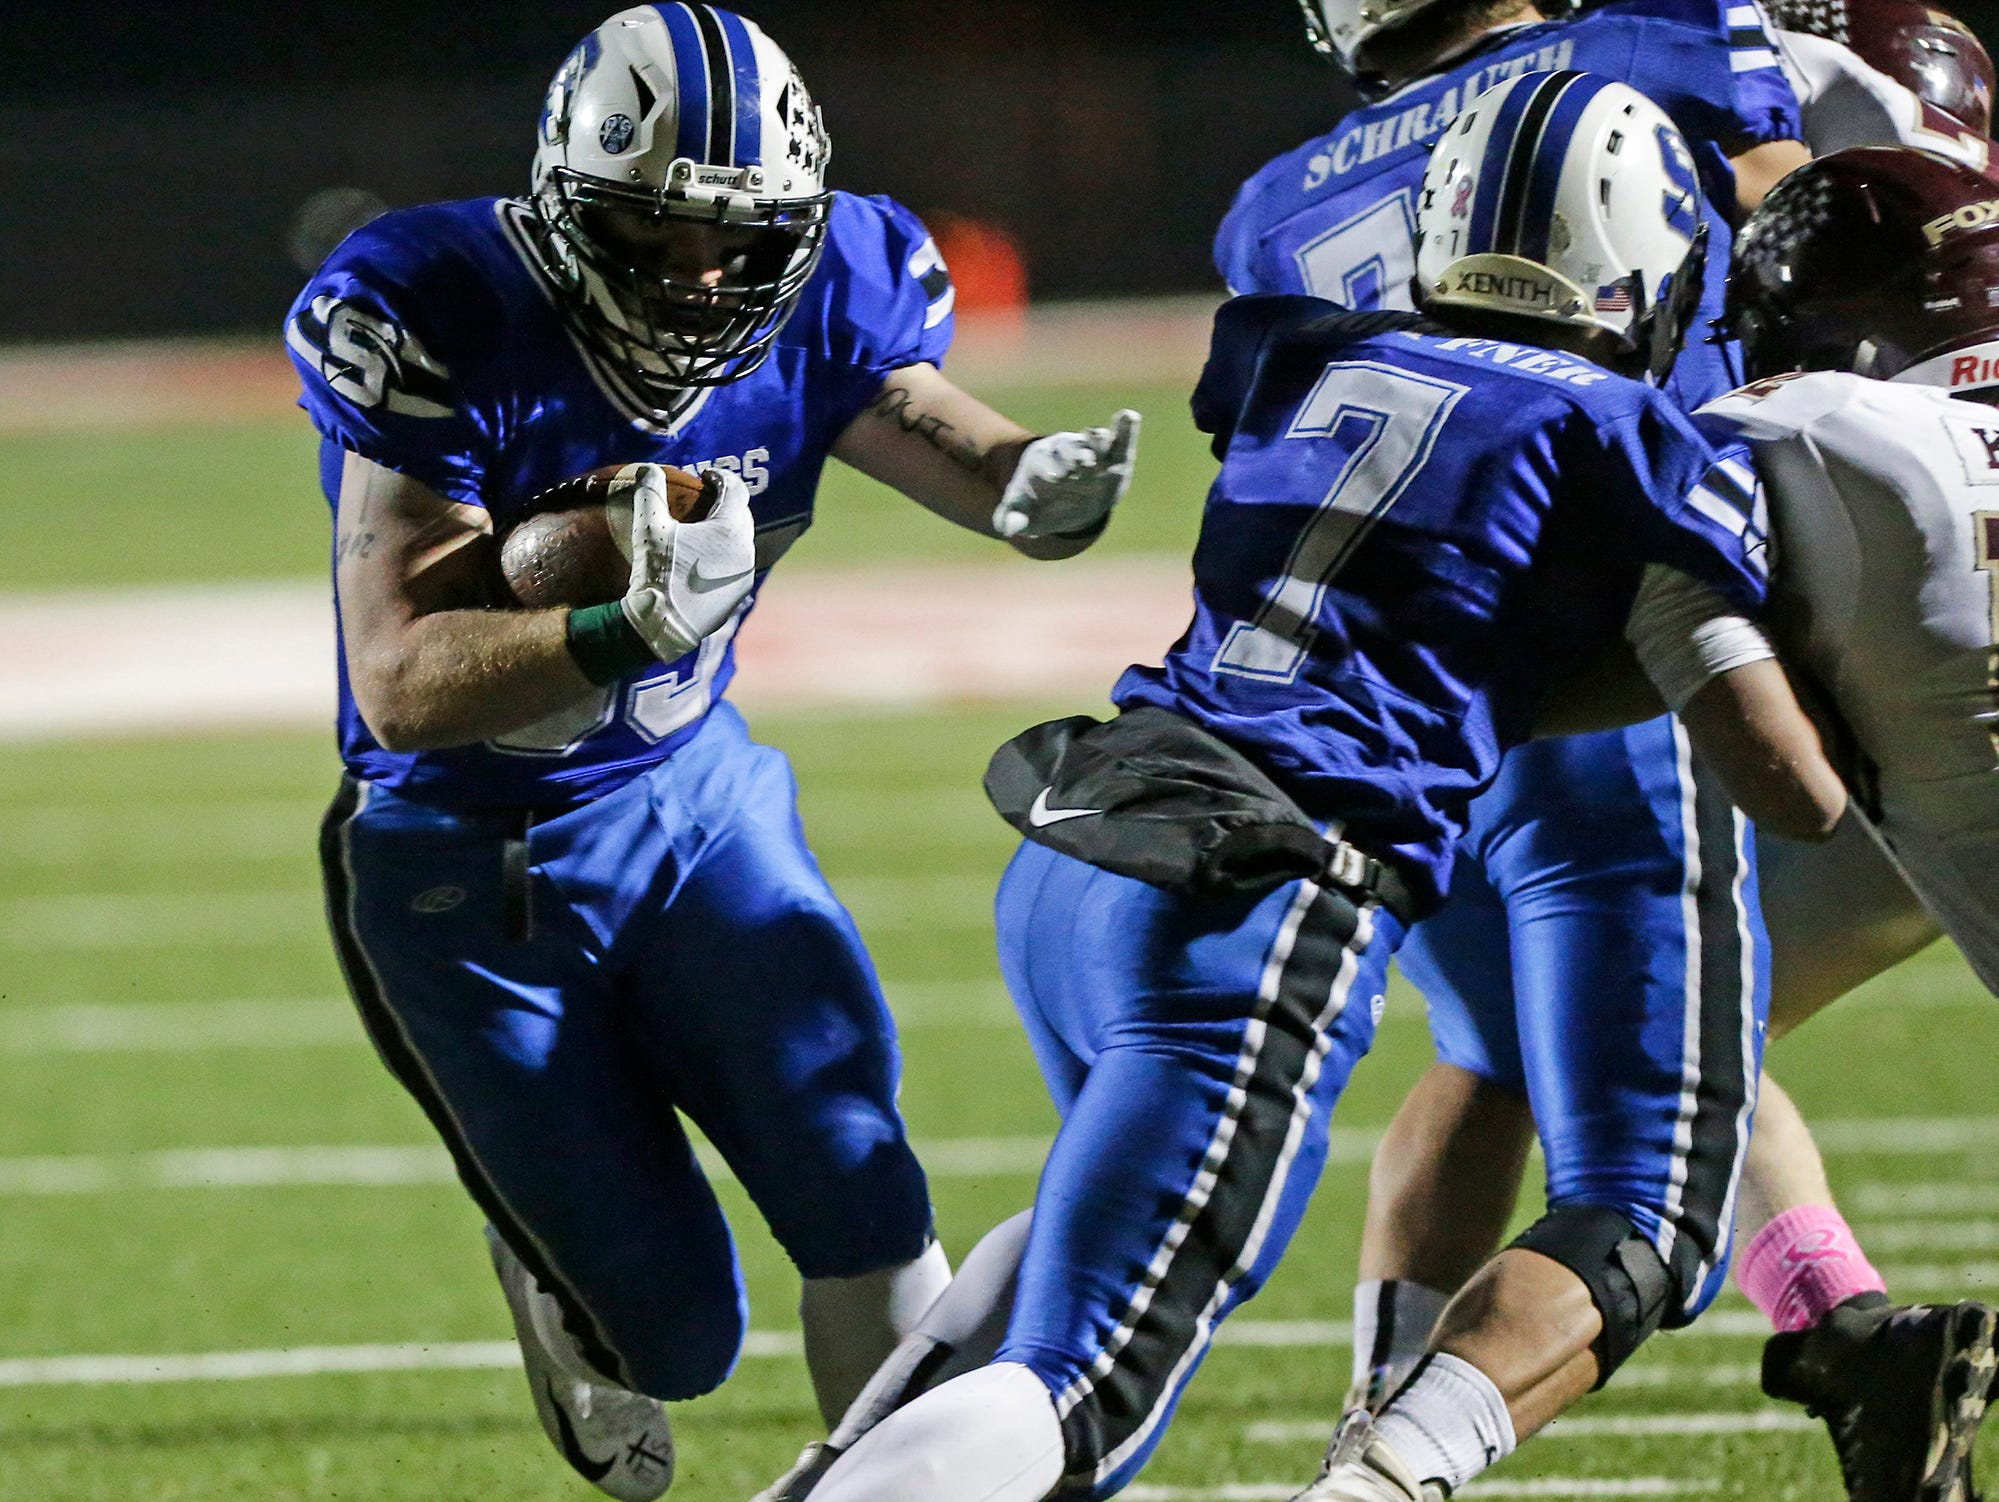 St. Mary's Springs Academy football's Marcus Orlandoni runs 10 yards to score the first touchdown of the game against Omro High School Friday, October 26, 2018 during their WIAA division five, level 2 playoff game played in Lomira, Wisconsin. Springs won the match-up 33-20. Doug Raflik/USA TODAY NETWORK-Wisconsin